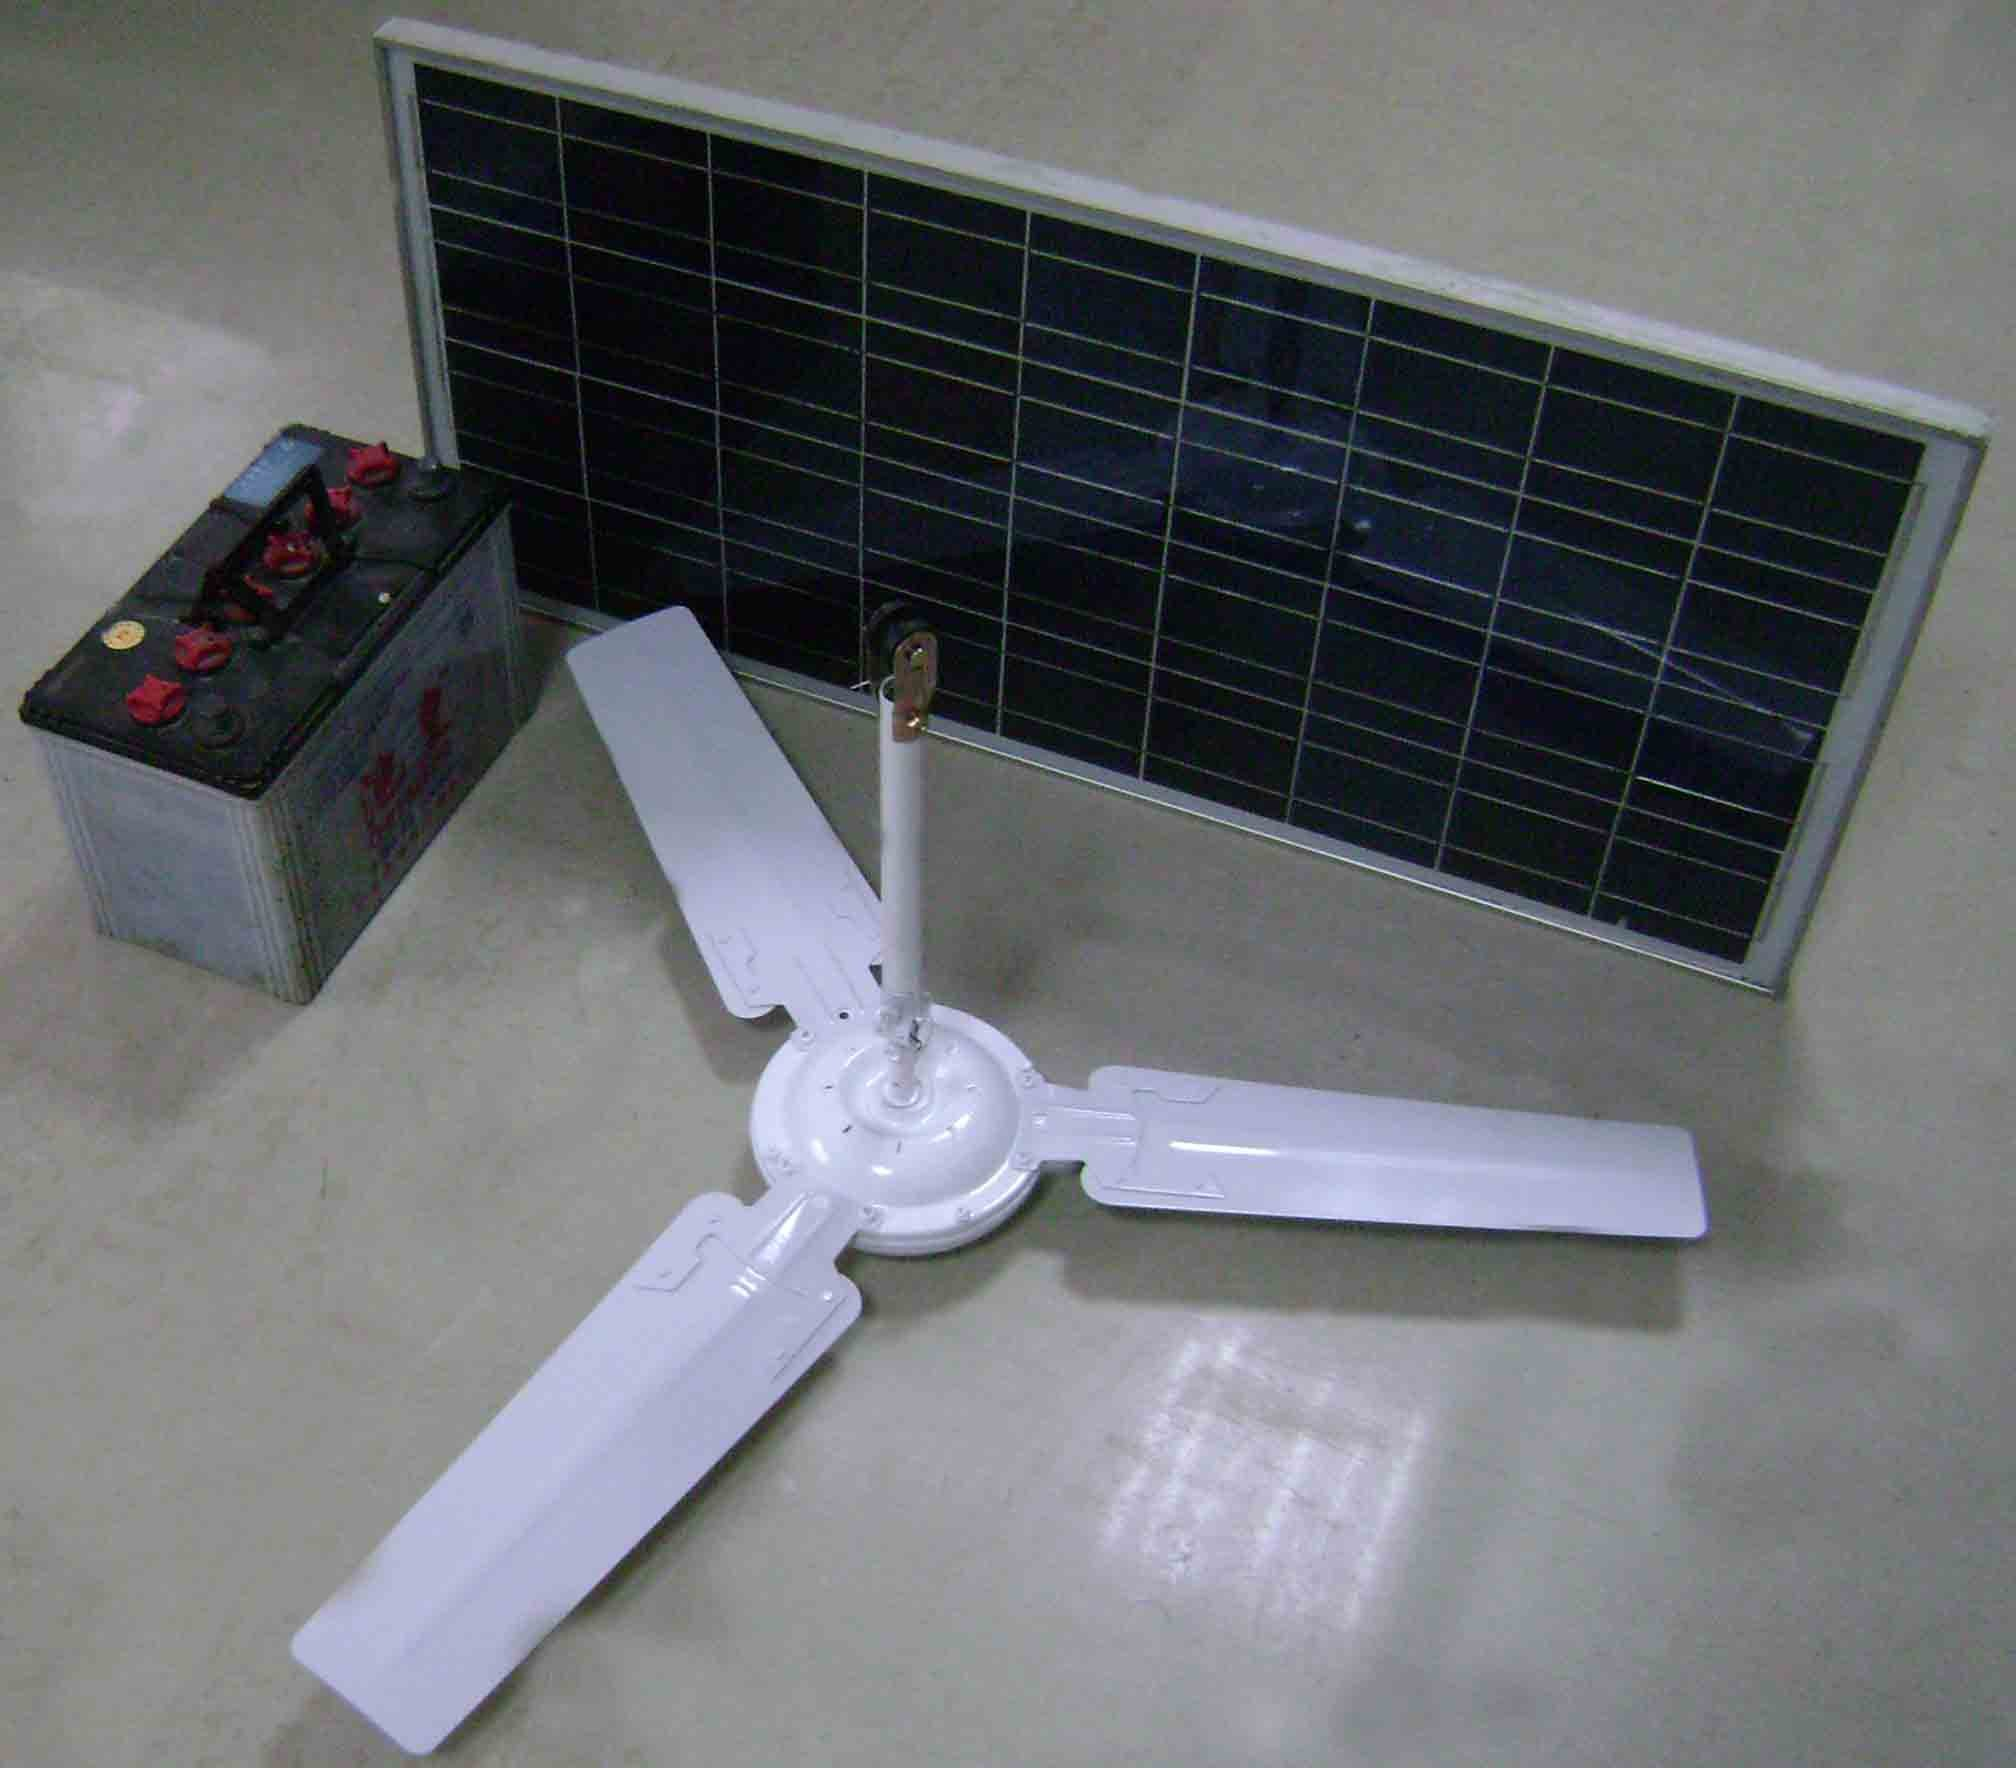 wiring a xpelair fan 1997 ez go txt diagram 10 things to consider before installing solar ceiling fans | warisan lighting